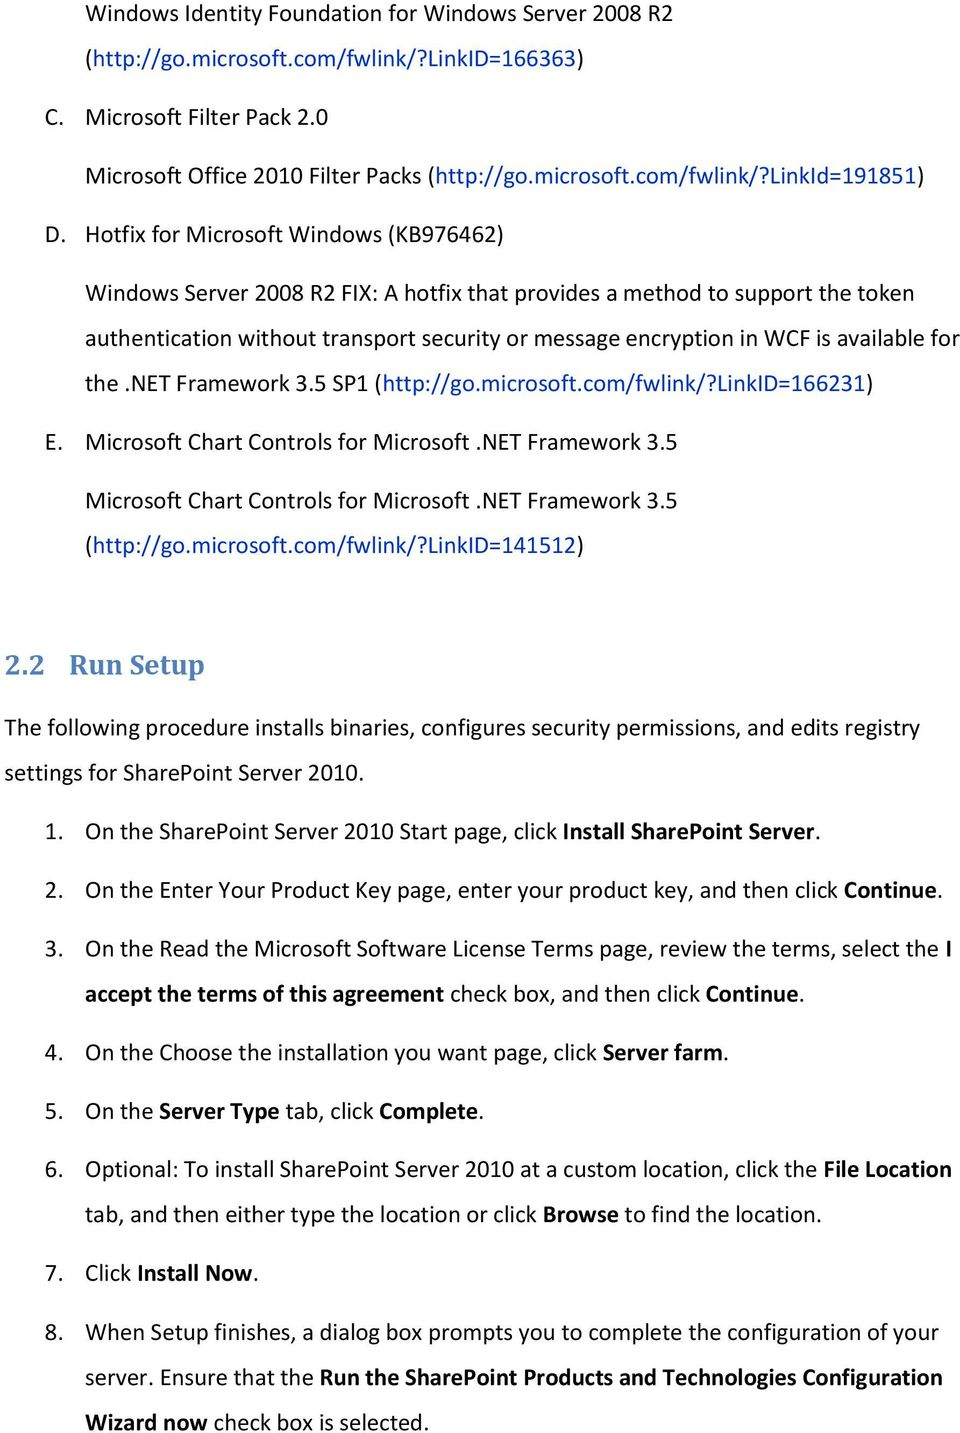 available for the.net Framework 3.5 SP1 (http://go.microsoft.com/fwlink/?linkid=166231) E. Microsoft Chart Controls for Microsoft.NET Framework 3.5 Microsoft Chart Controls for Microsoft.